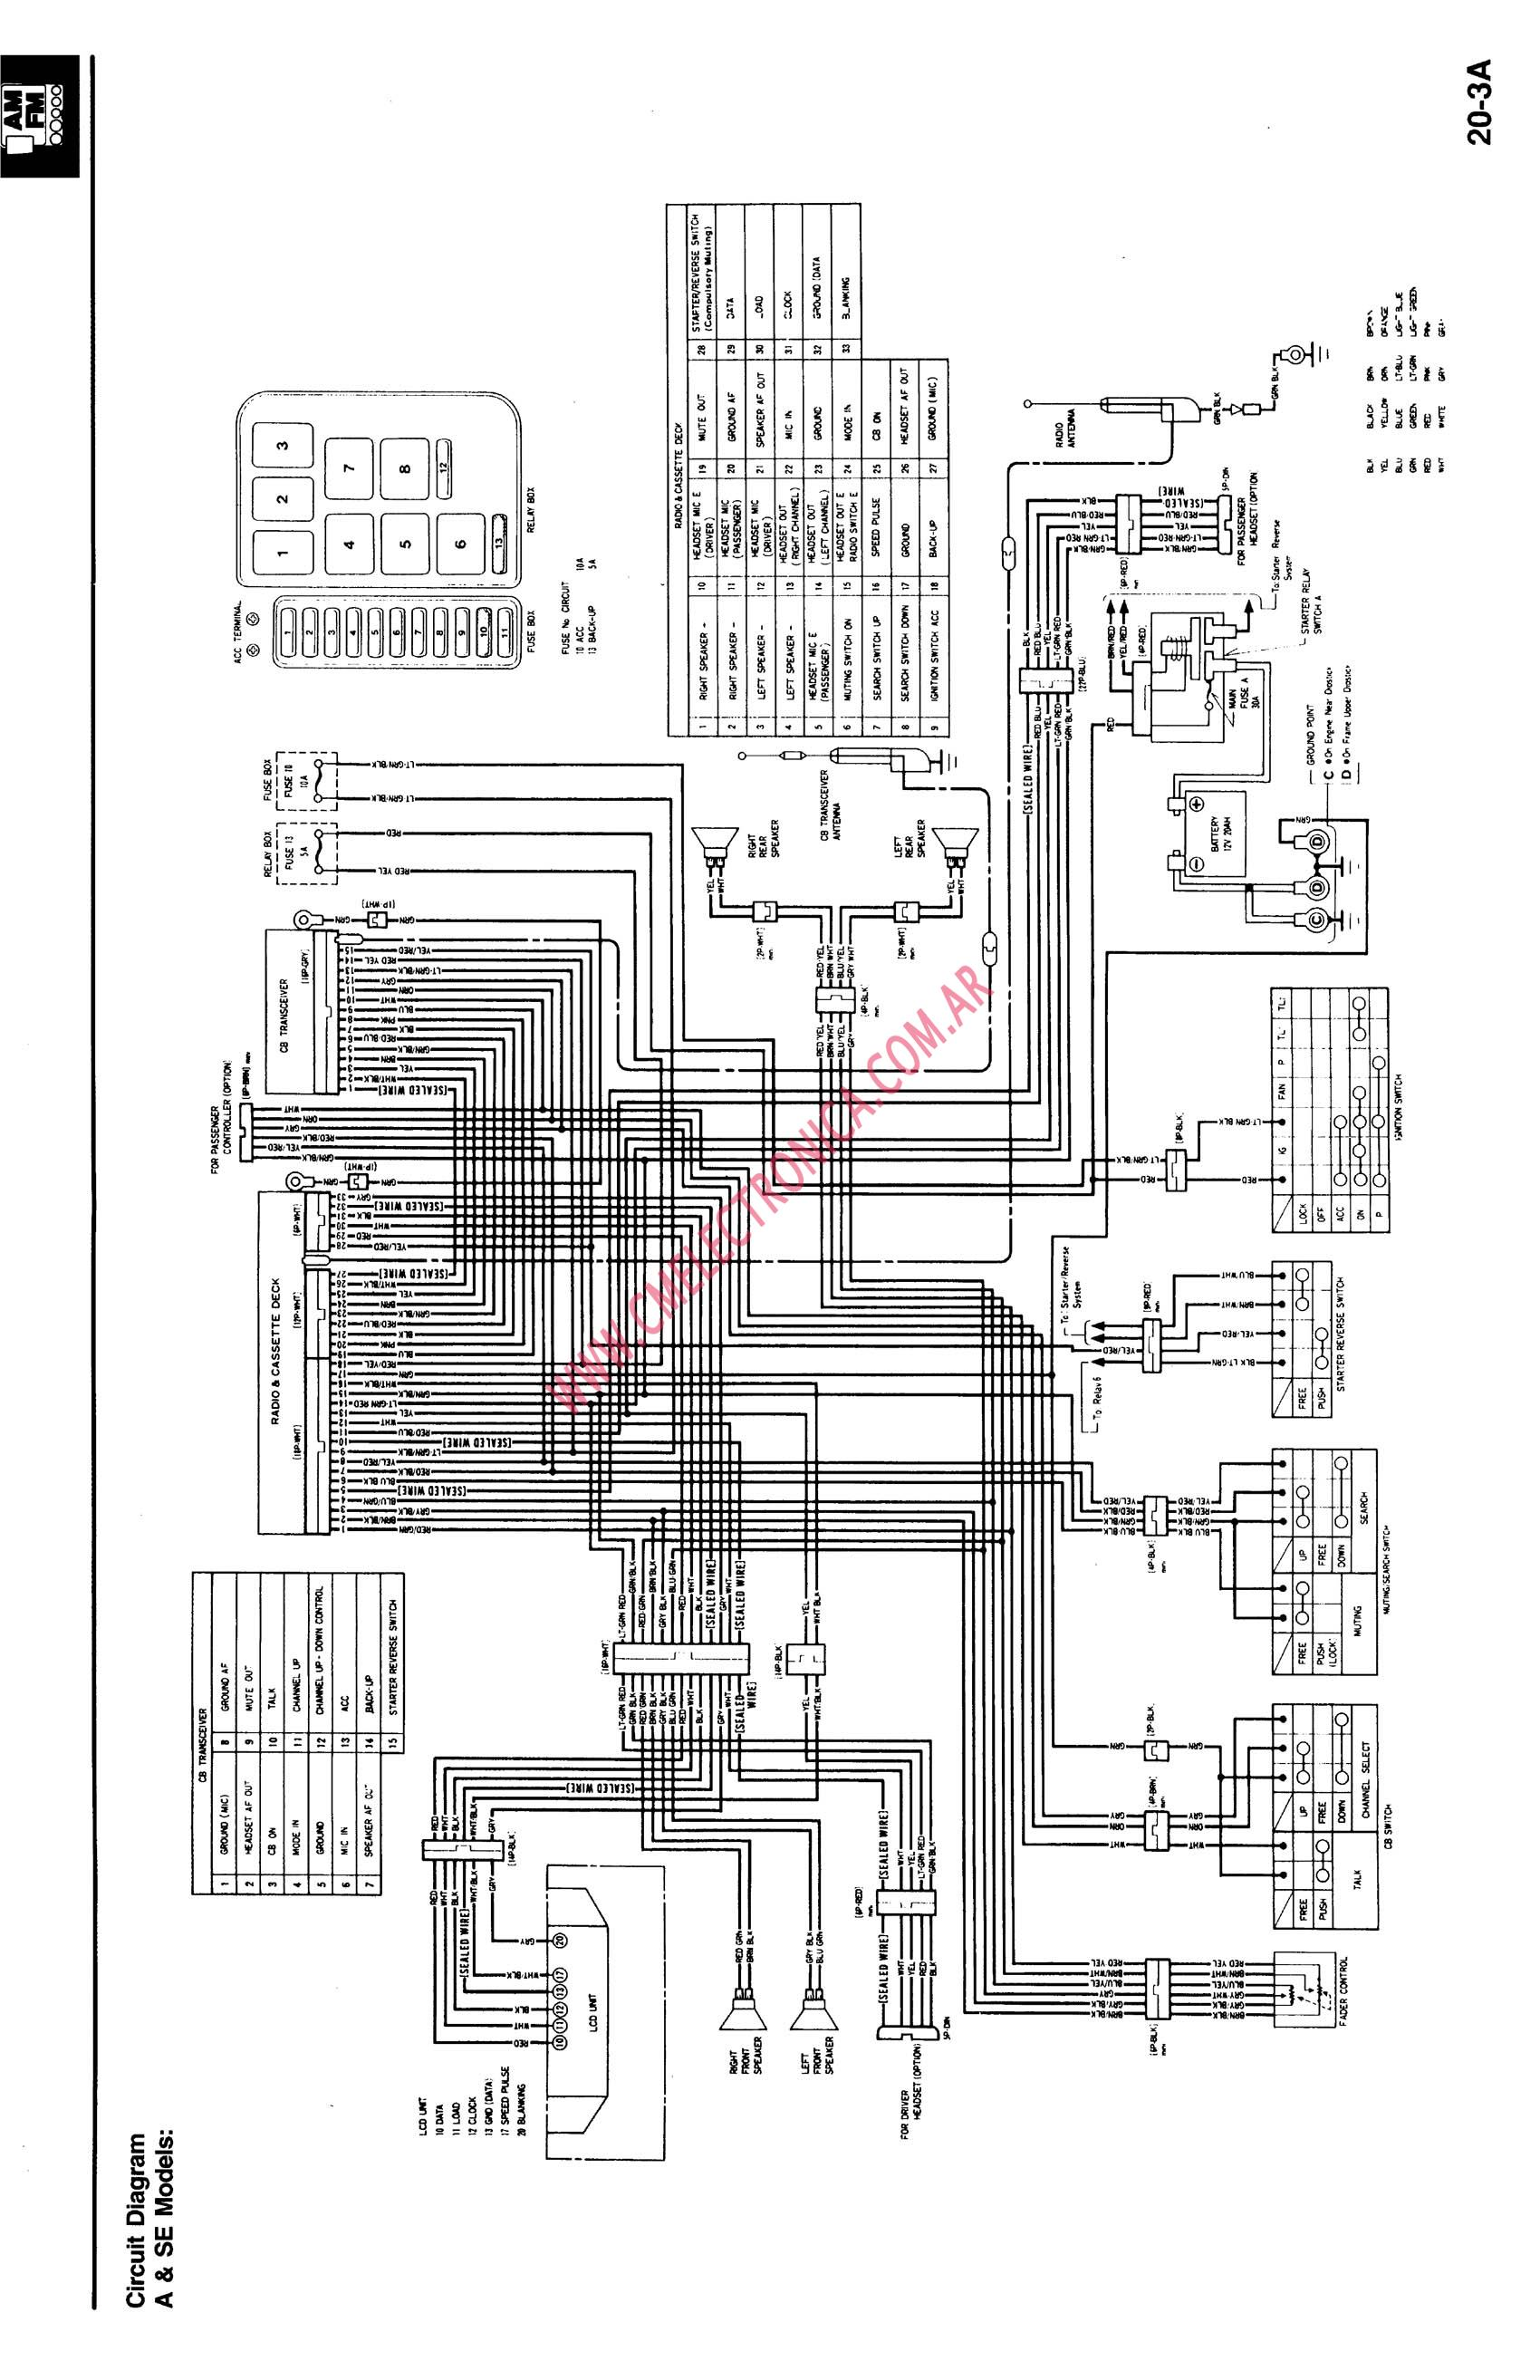 Smart Turn System Wiring Diagram For Honda Valkyrie